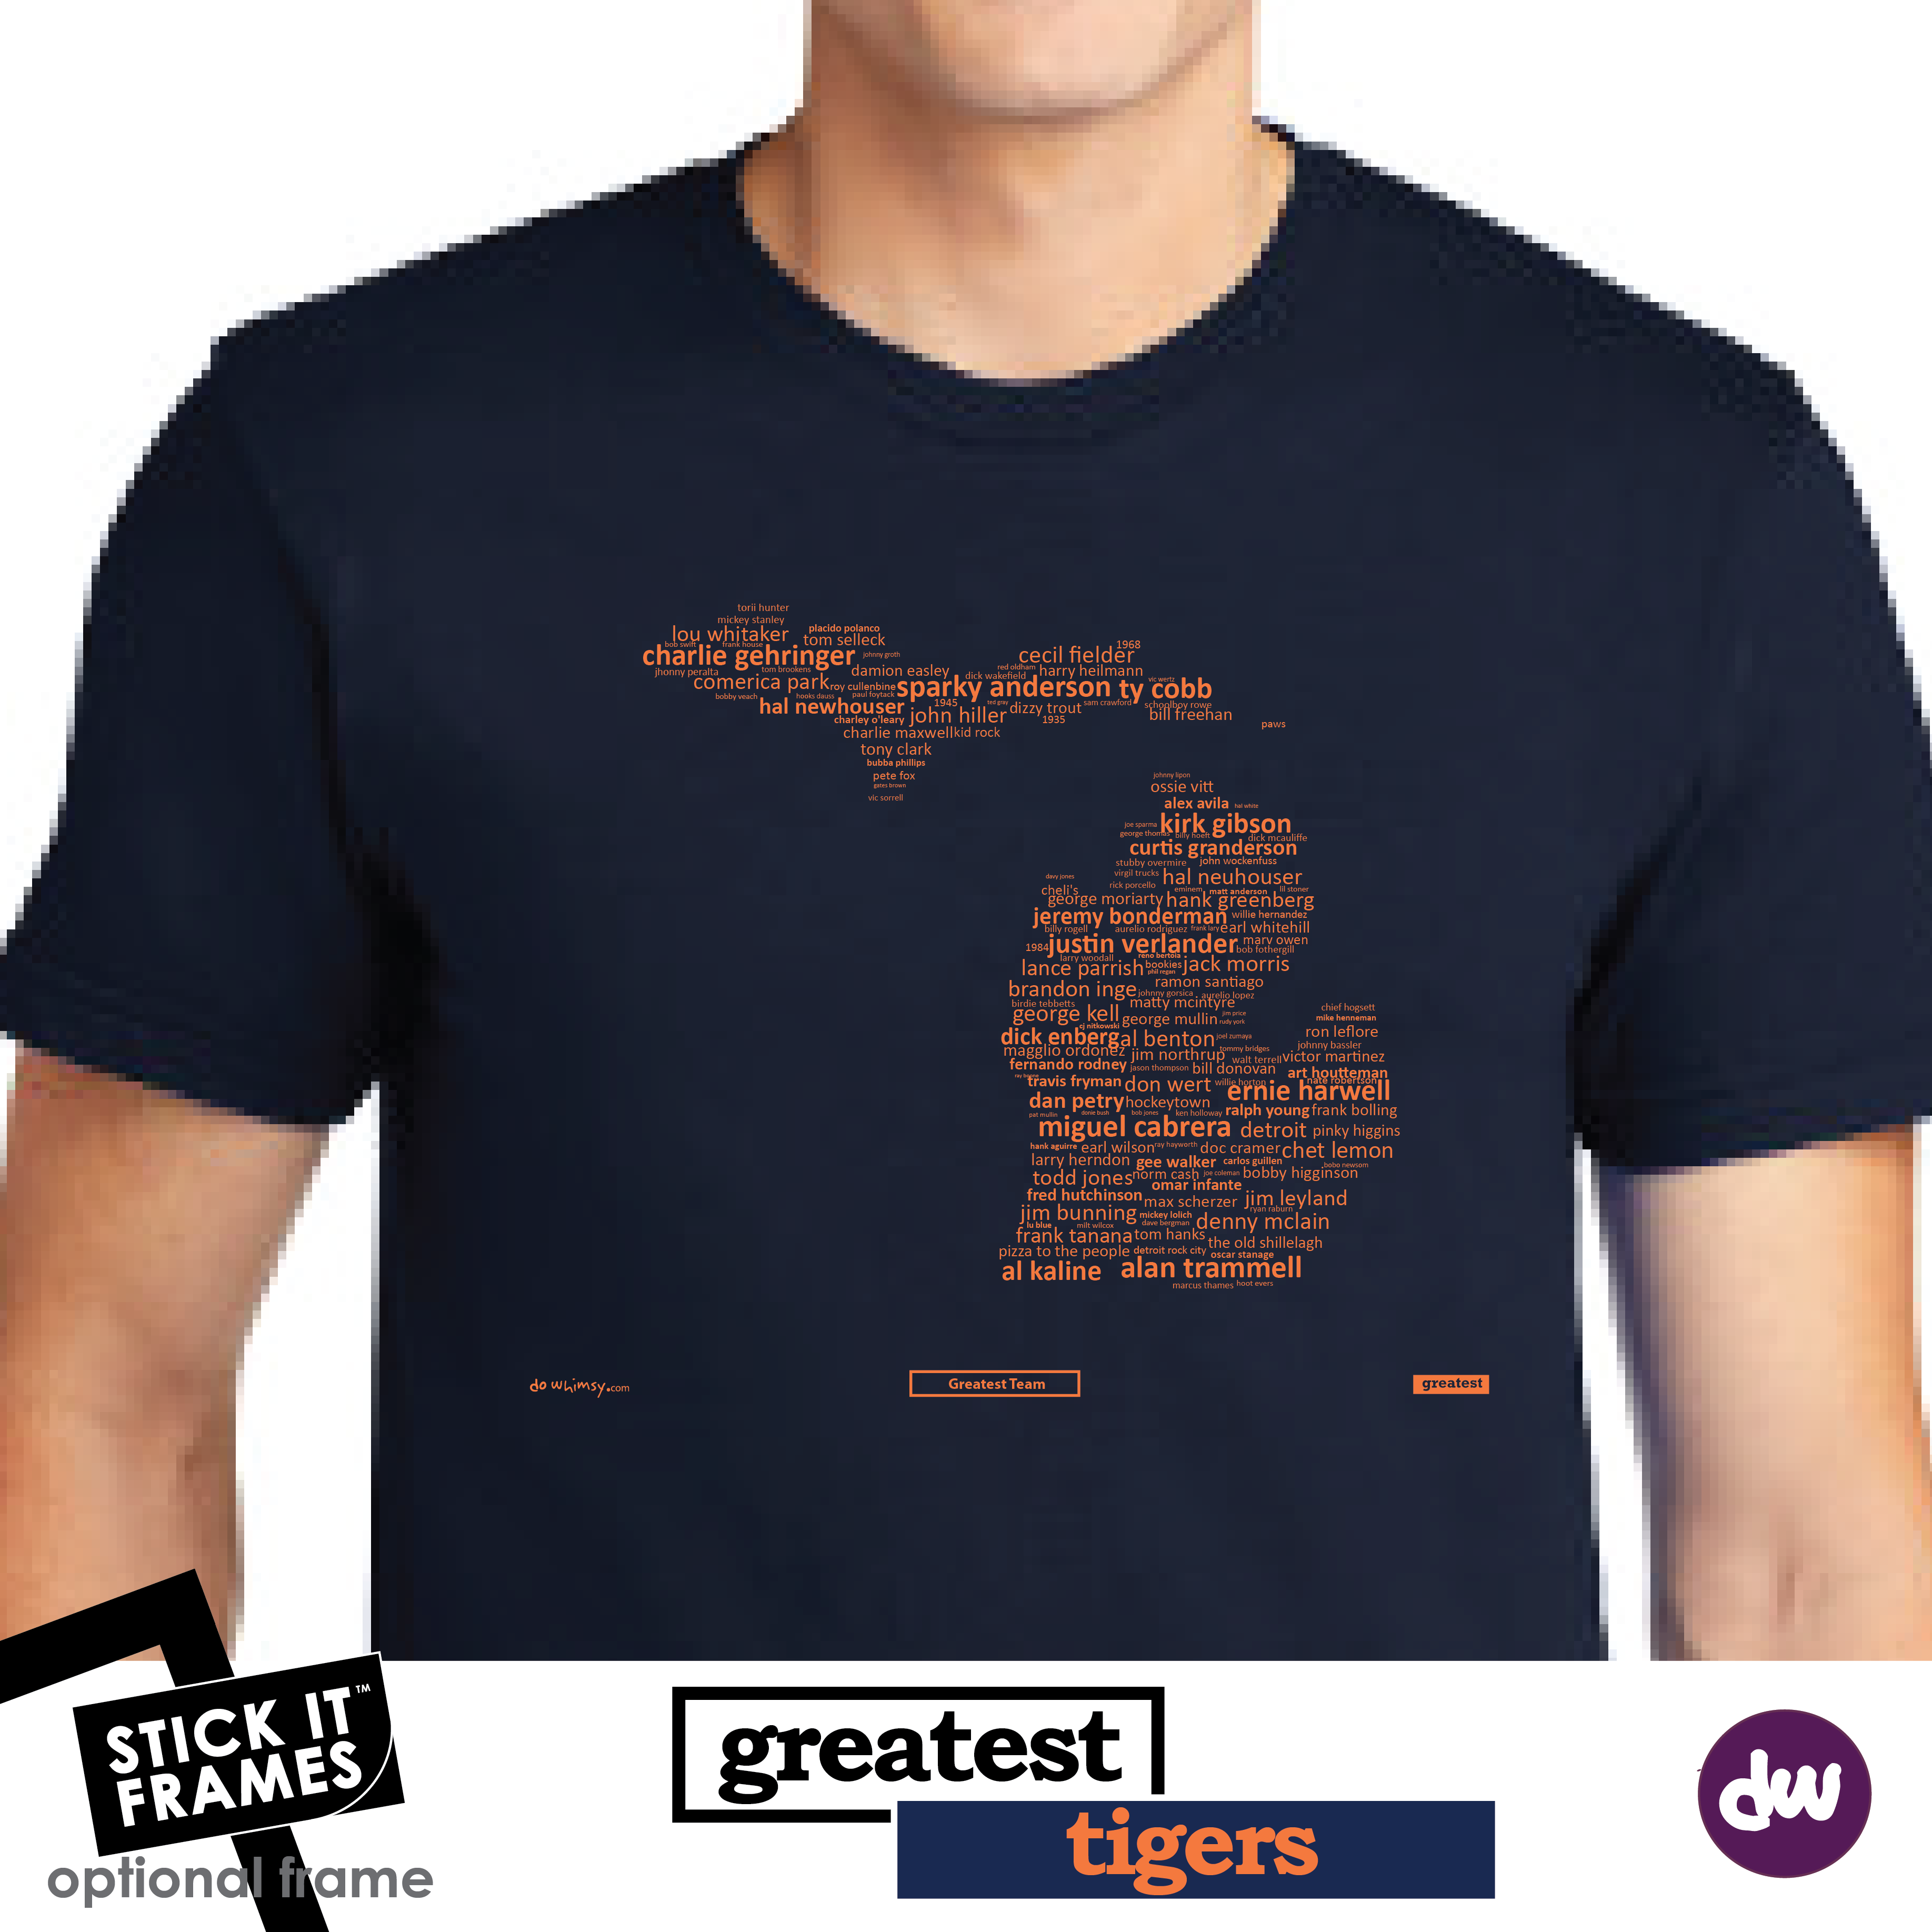 Greatest Michigan (Tigers) - All Products (Shirt, Art, Frames (R))